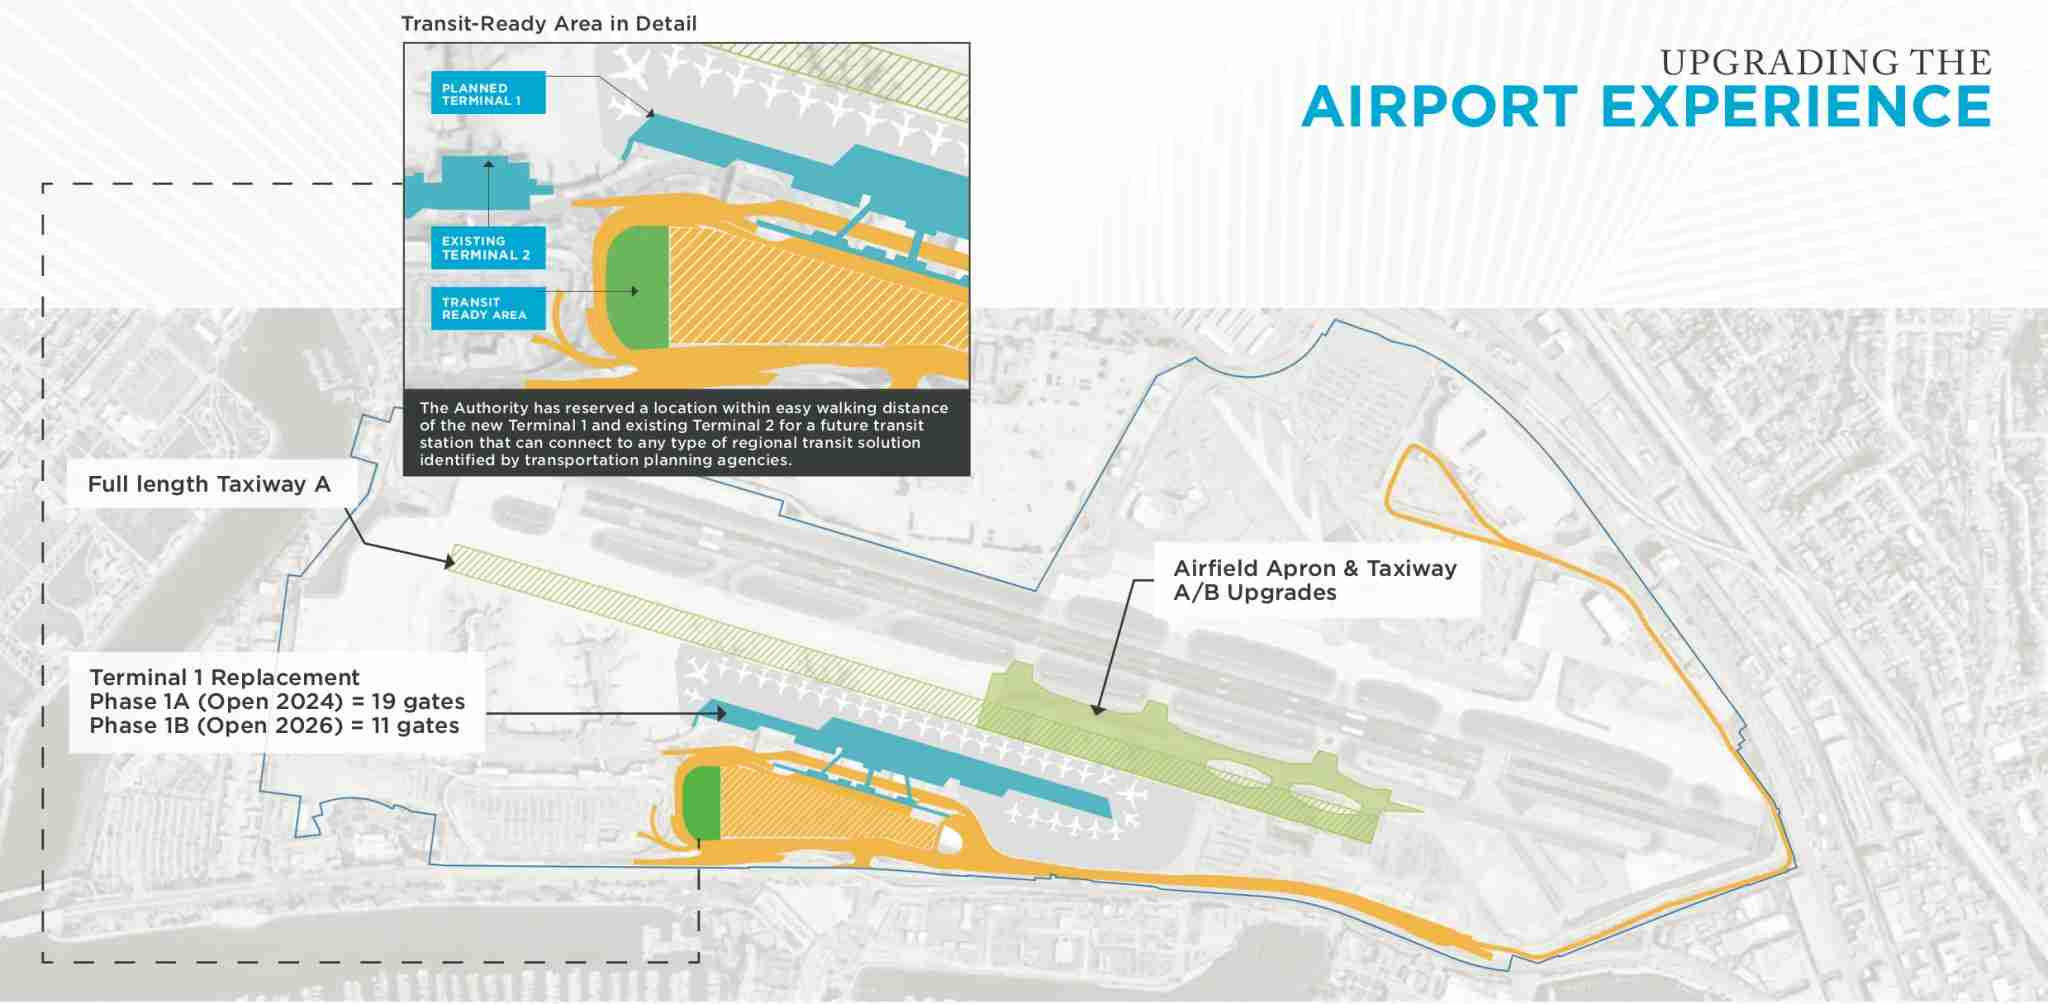 A map showing the different elements of San Diego International Airport